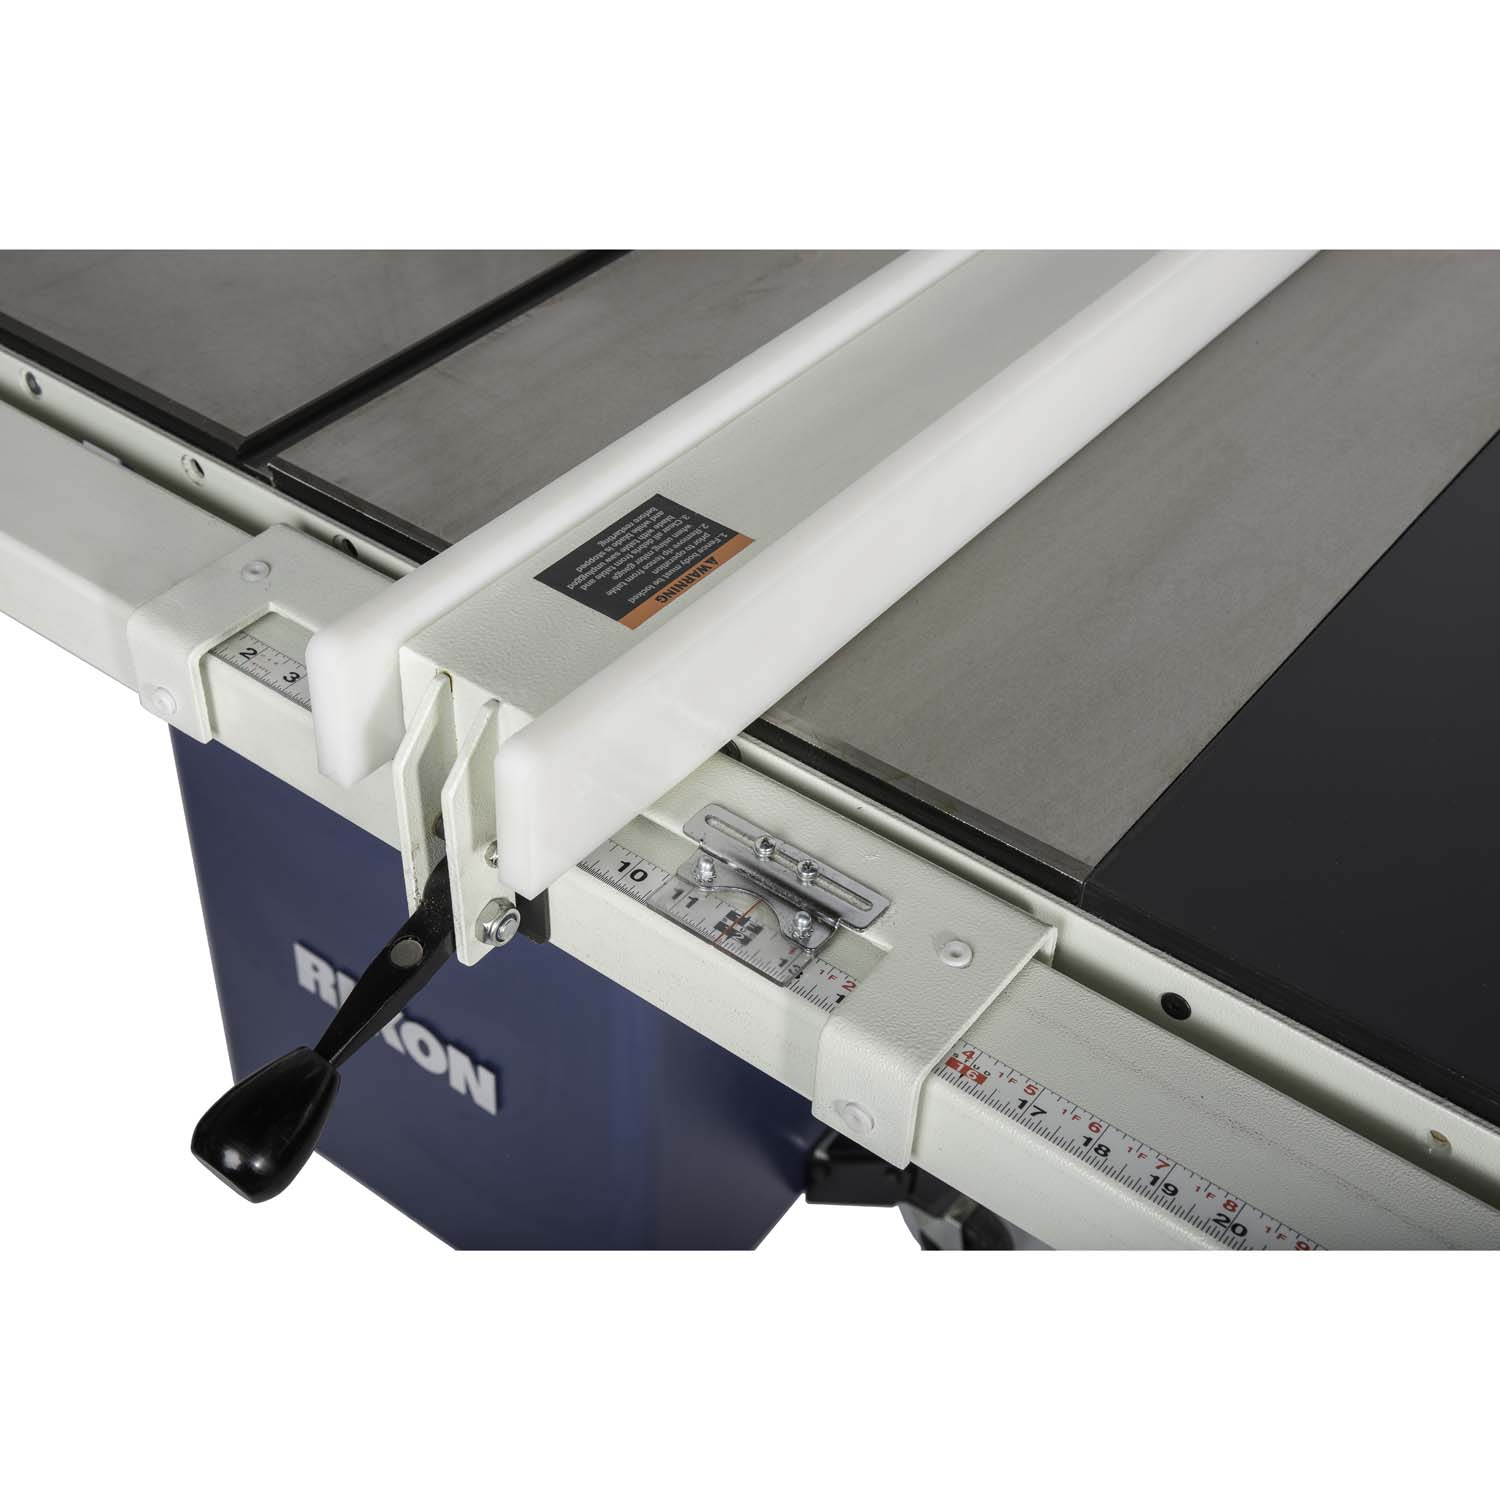 t hover to fence glide industrial saw hp shop zoom table ph sawstop cabinet product ics